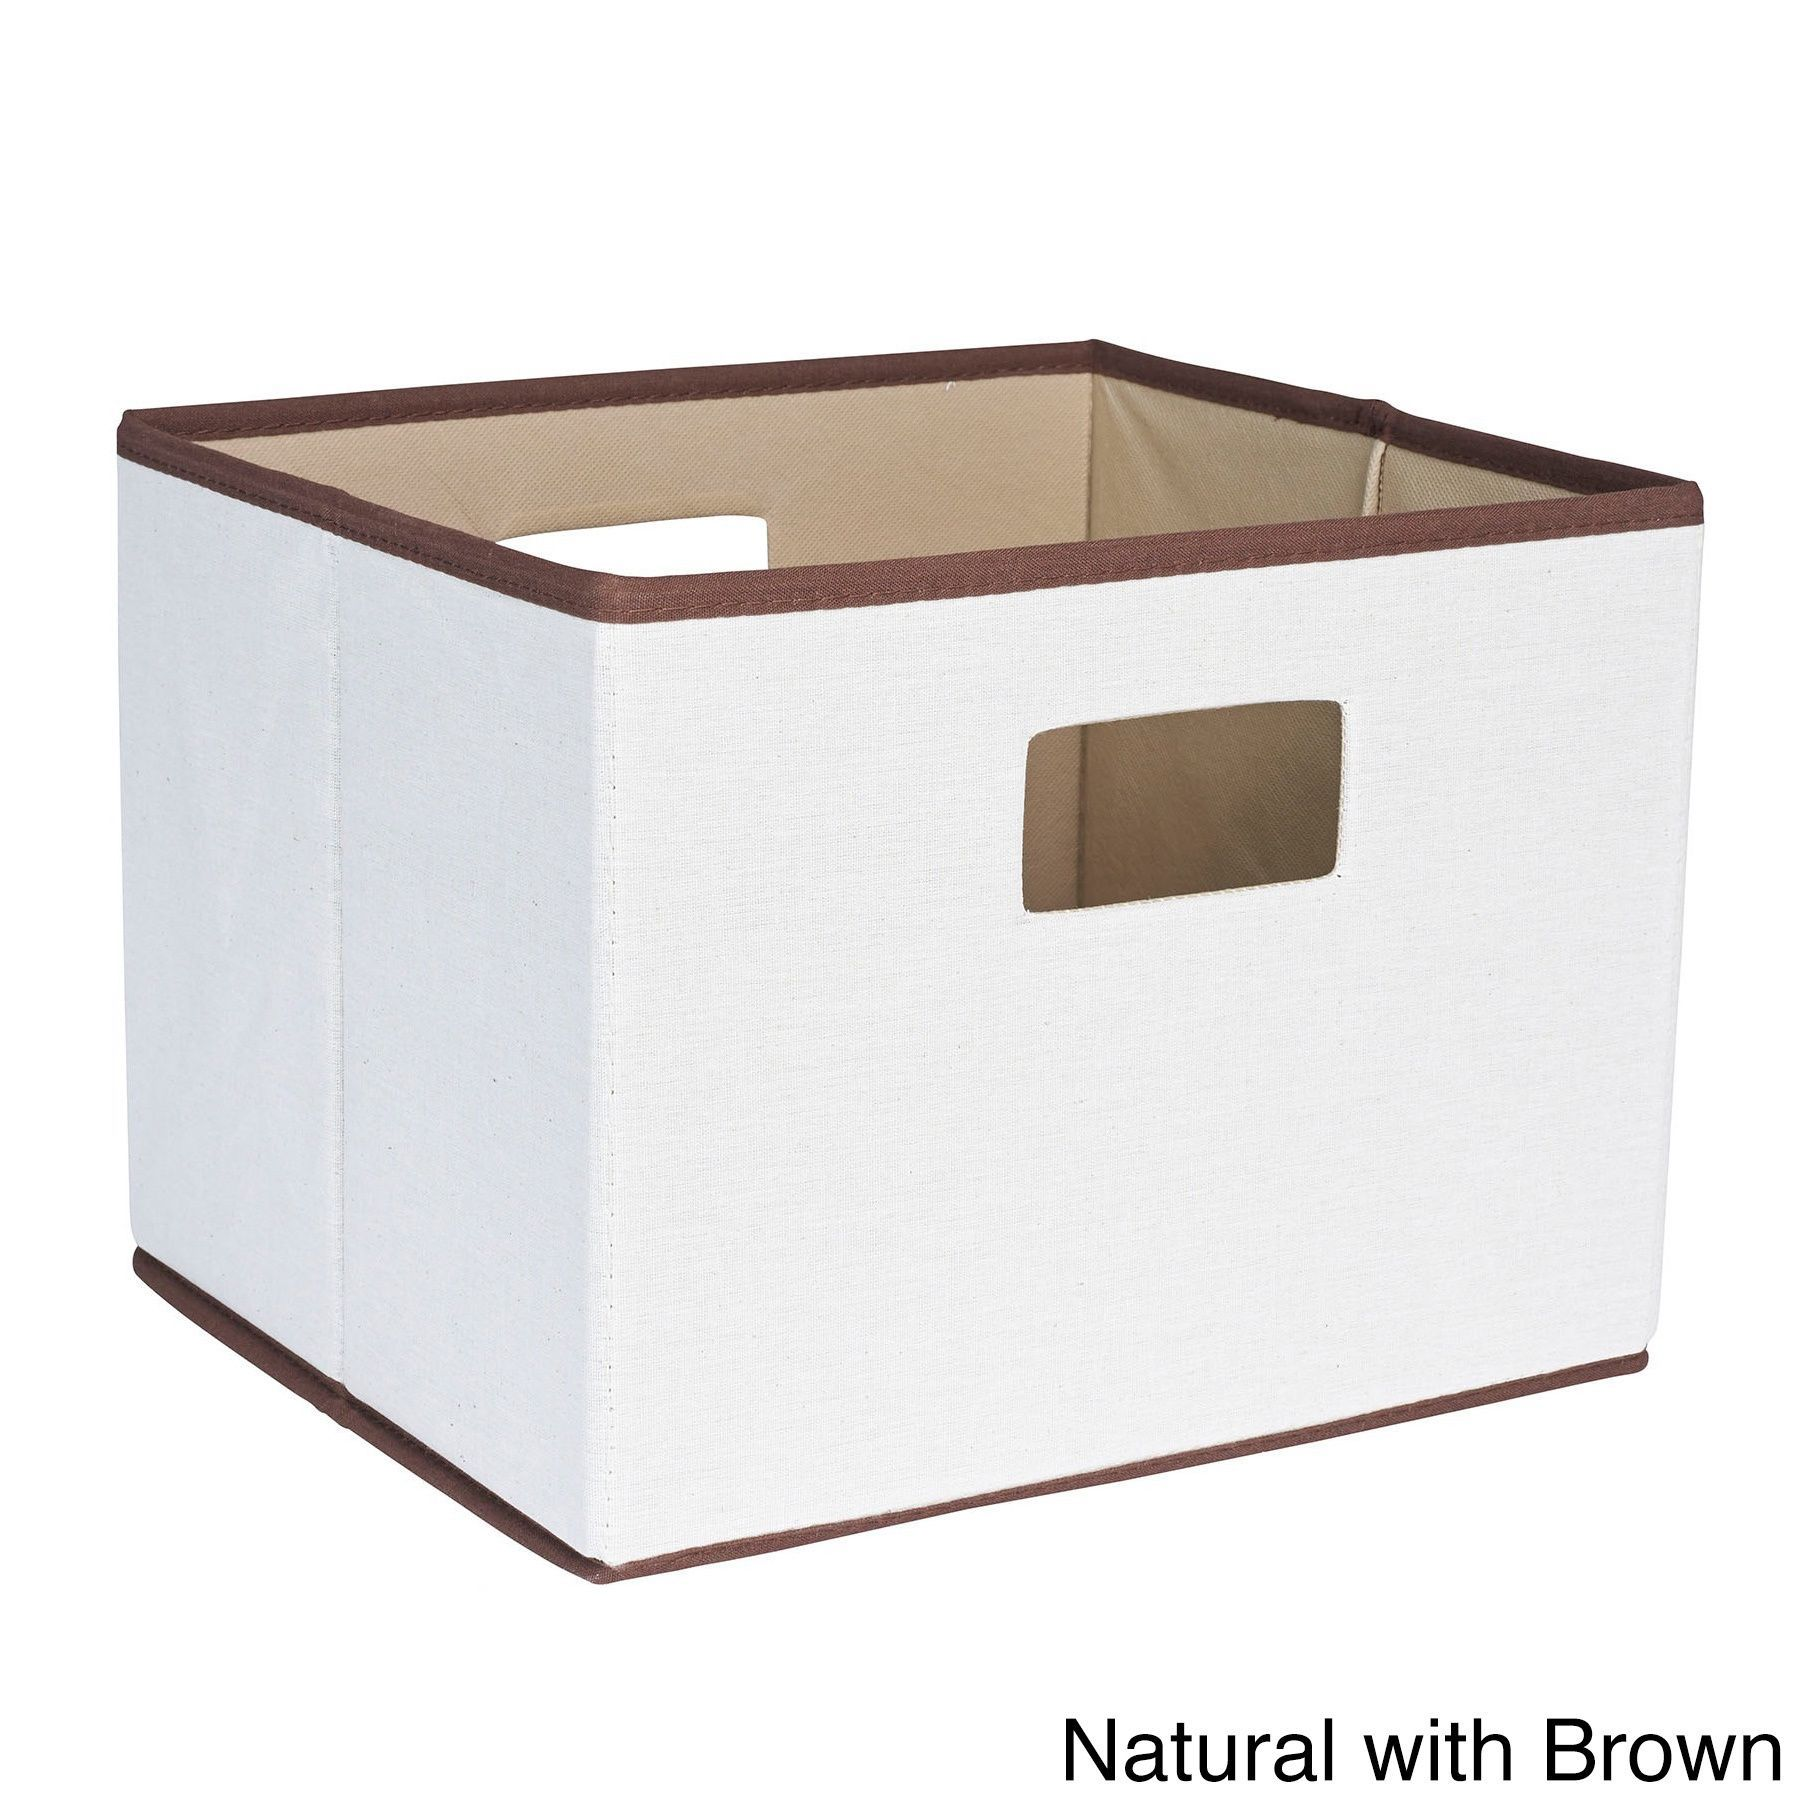 Household Essentials White Grey Green Off White Brown Fabric 10 Inch X 13 Inch X 11 5 Inch Cutout Handles Open Storage Bin Storage Bins Fabric Storage Bins Household